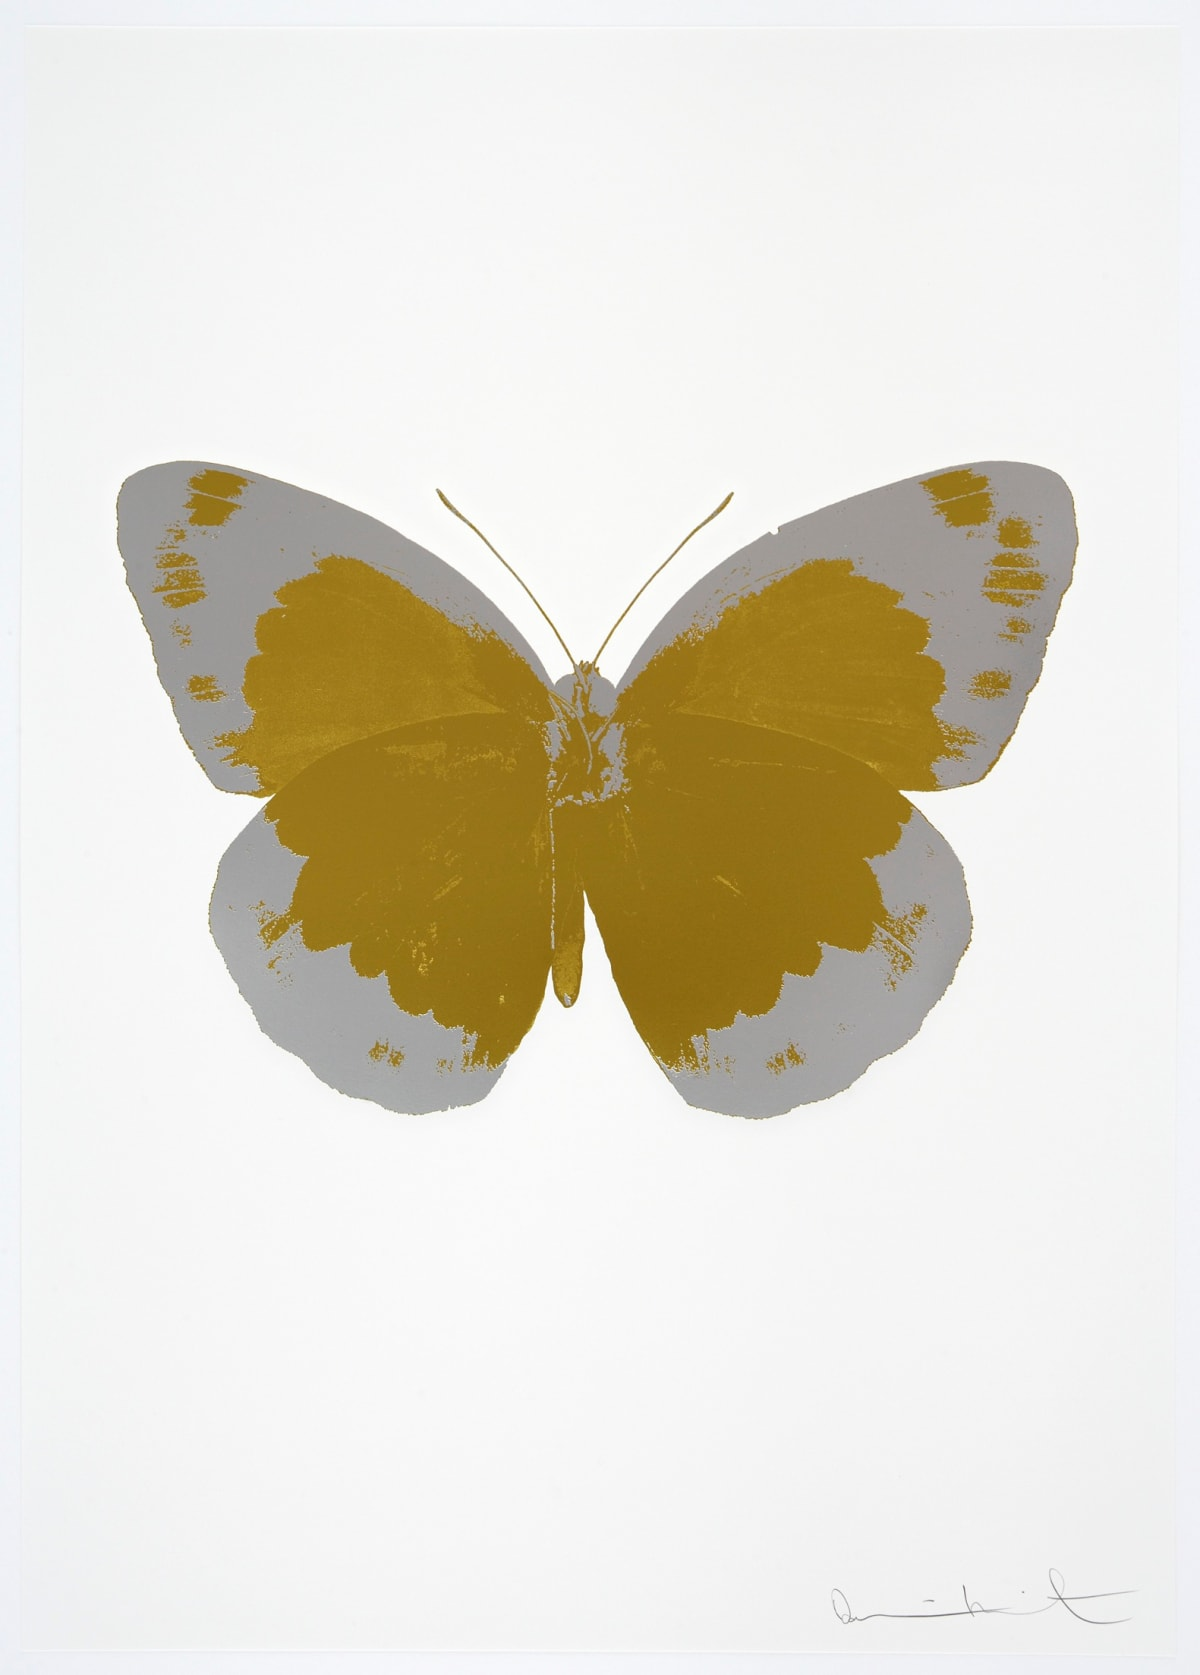 Damien Hirst The Souls II - Oriental Gold/Silver Gloss/Blind Impression, 2010 2 colour foil block on 300gsm Arches 88 archival paper. Signed and numbered. Published by Paul Stolper and Other Criteria 72 x 51cm Edition of 15